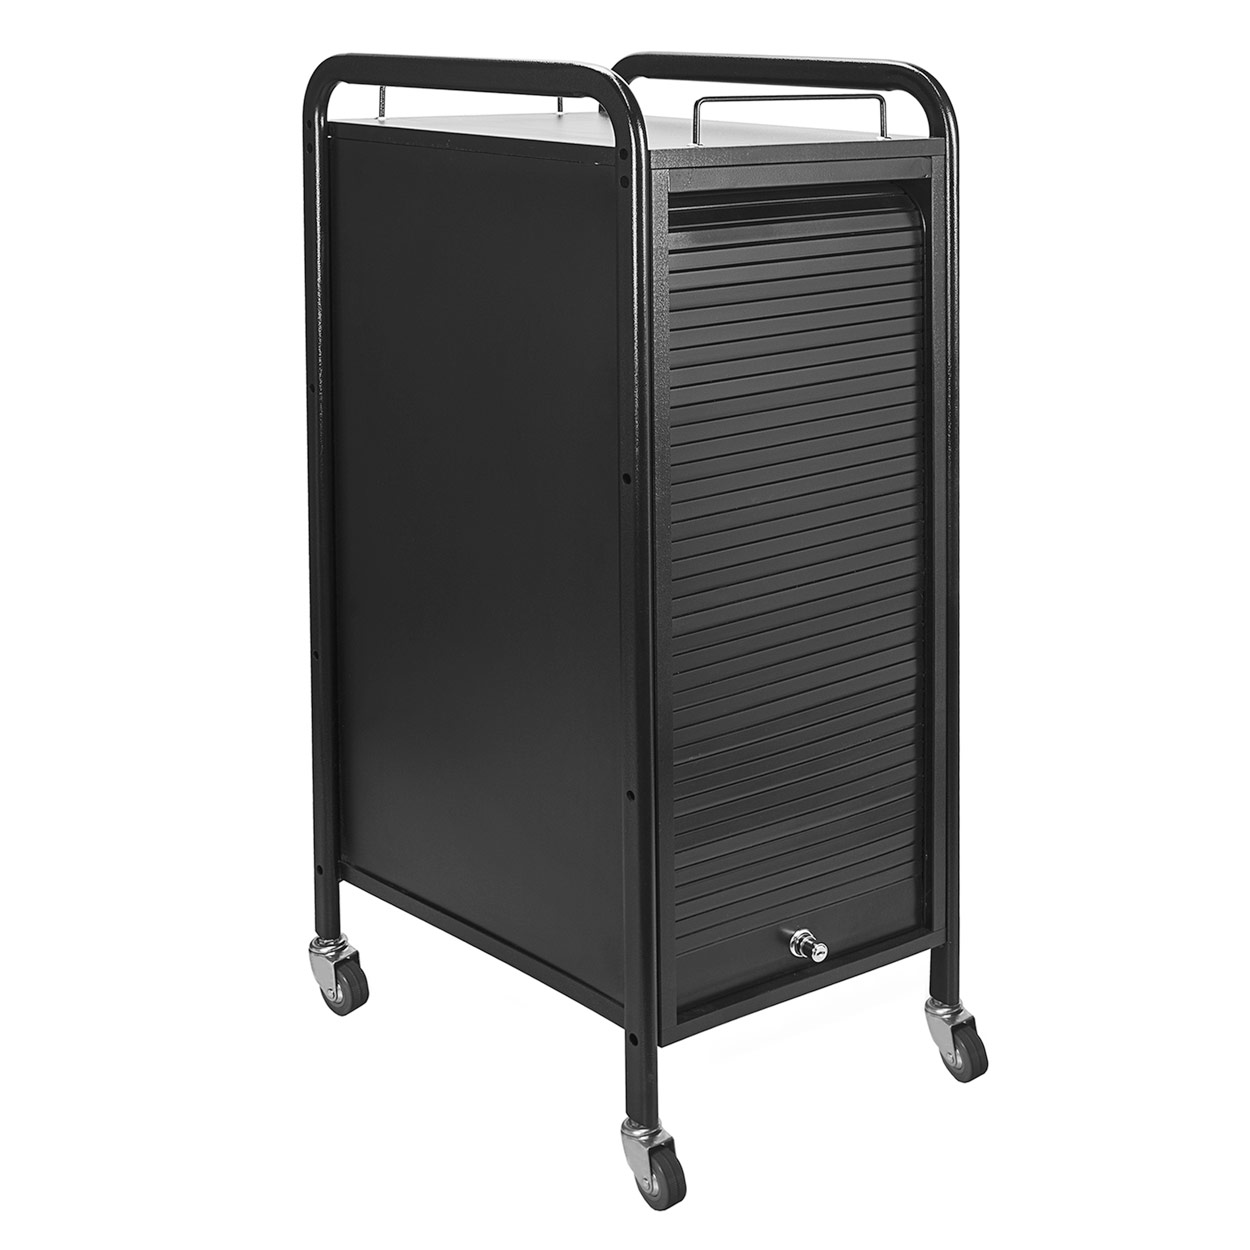 Hair Salon Metal Locking Trolley Cart with Appliance Holder alternative product image 4